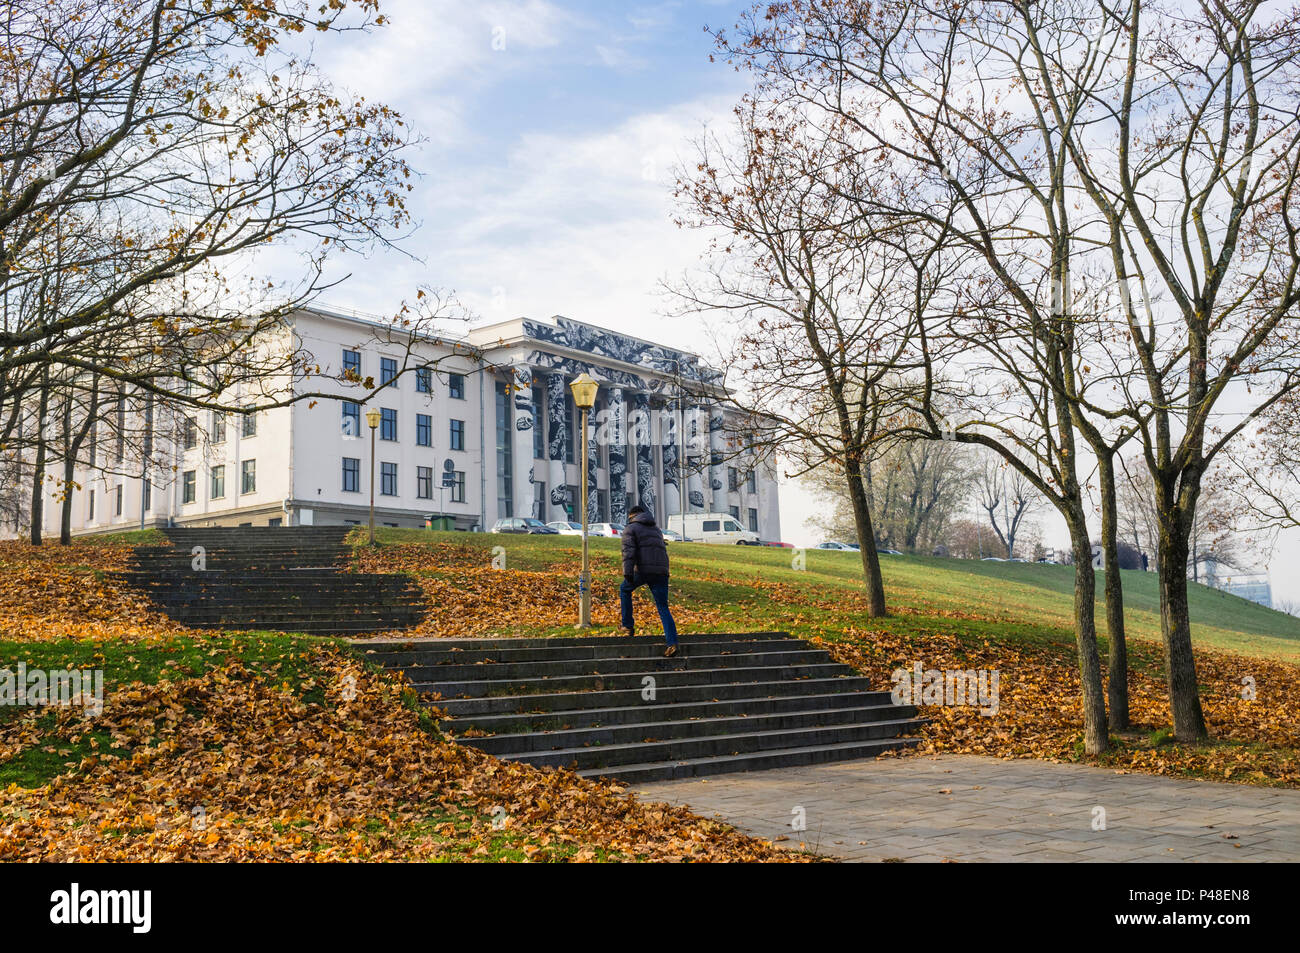 Former Workers Union Building on Tauras Hill, Vilnius, Lithuania, Europe Stock Photo